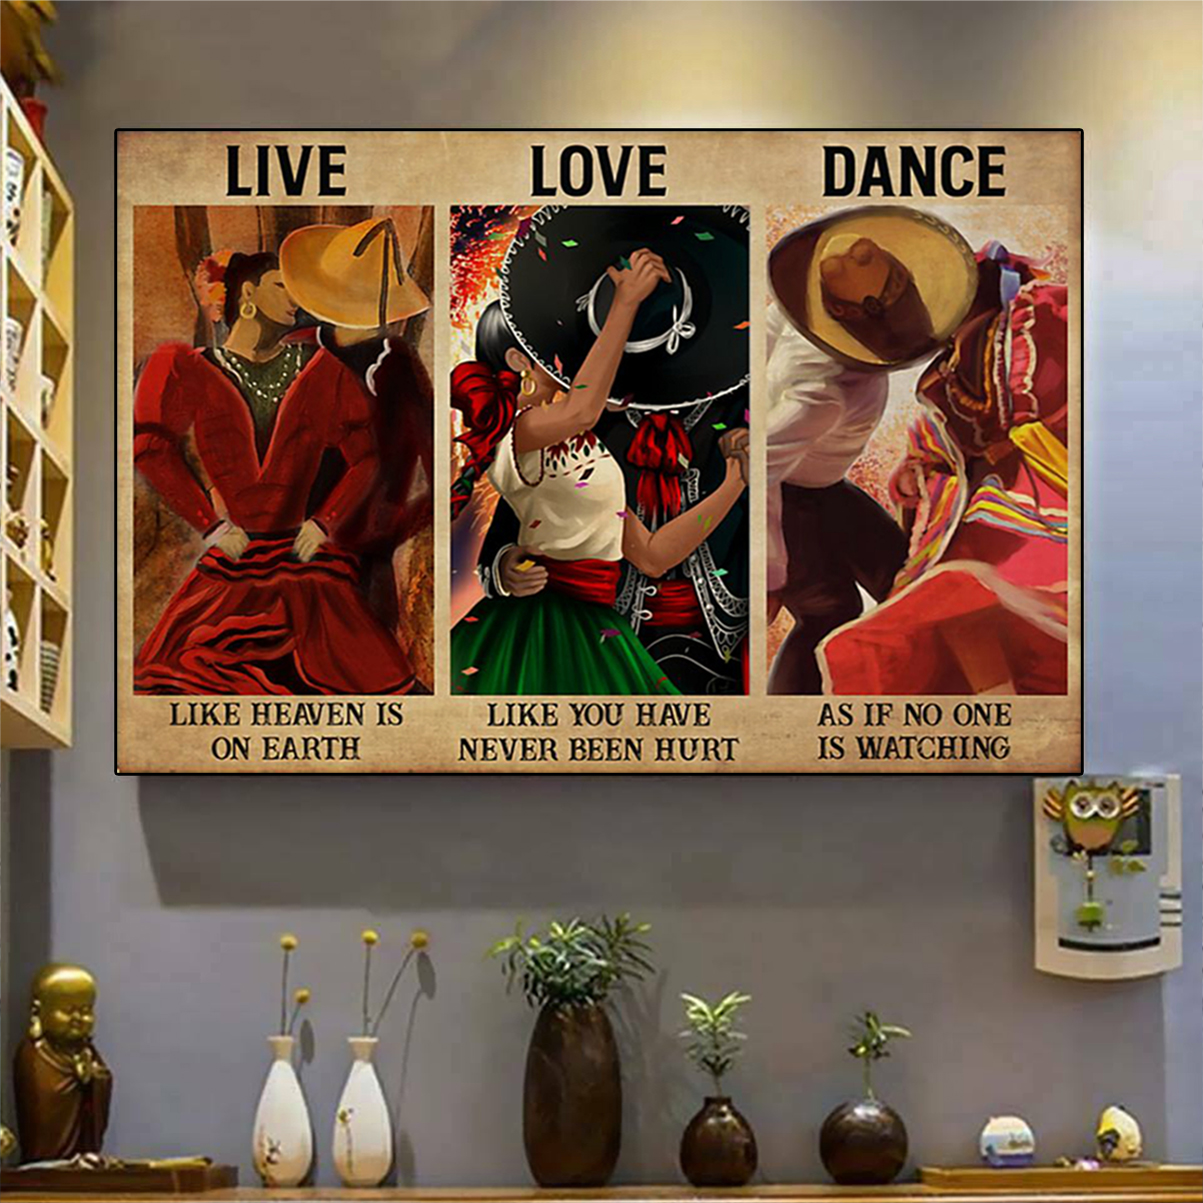 Mexican dance live love dance poster A1